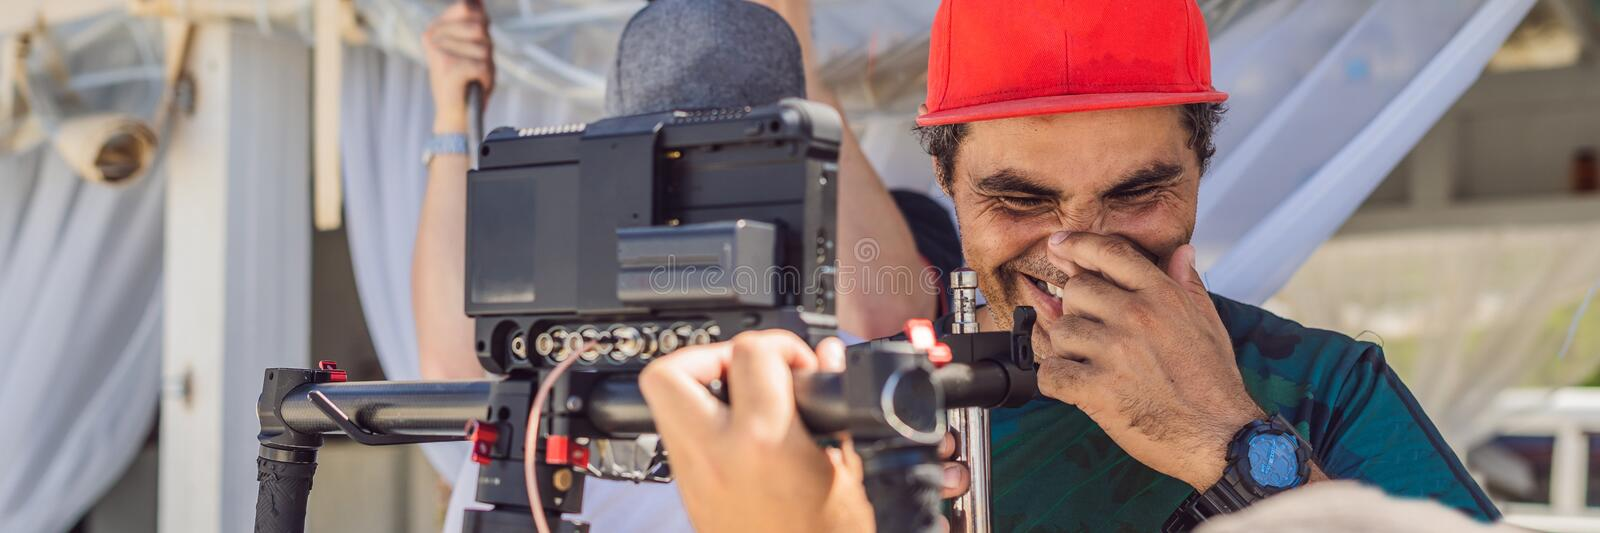 The production team on a commercial video shoot. Steadicam operator uses the 3-axis camera stabilizer and cinema-grade. Camera. BANNER, LONG FORMAT stock photography